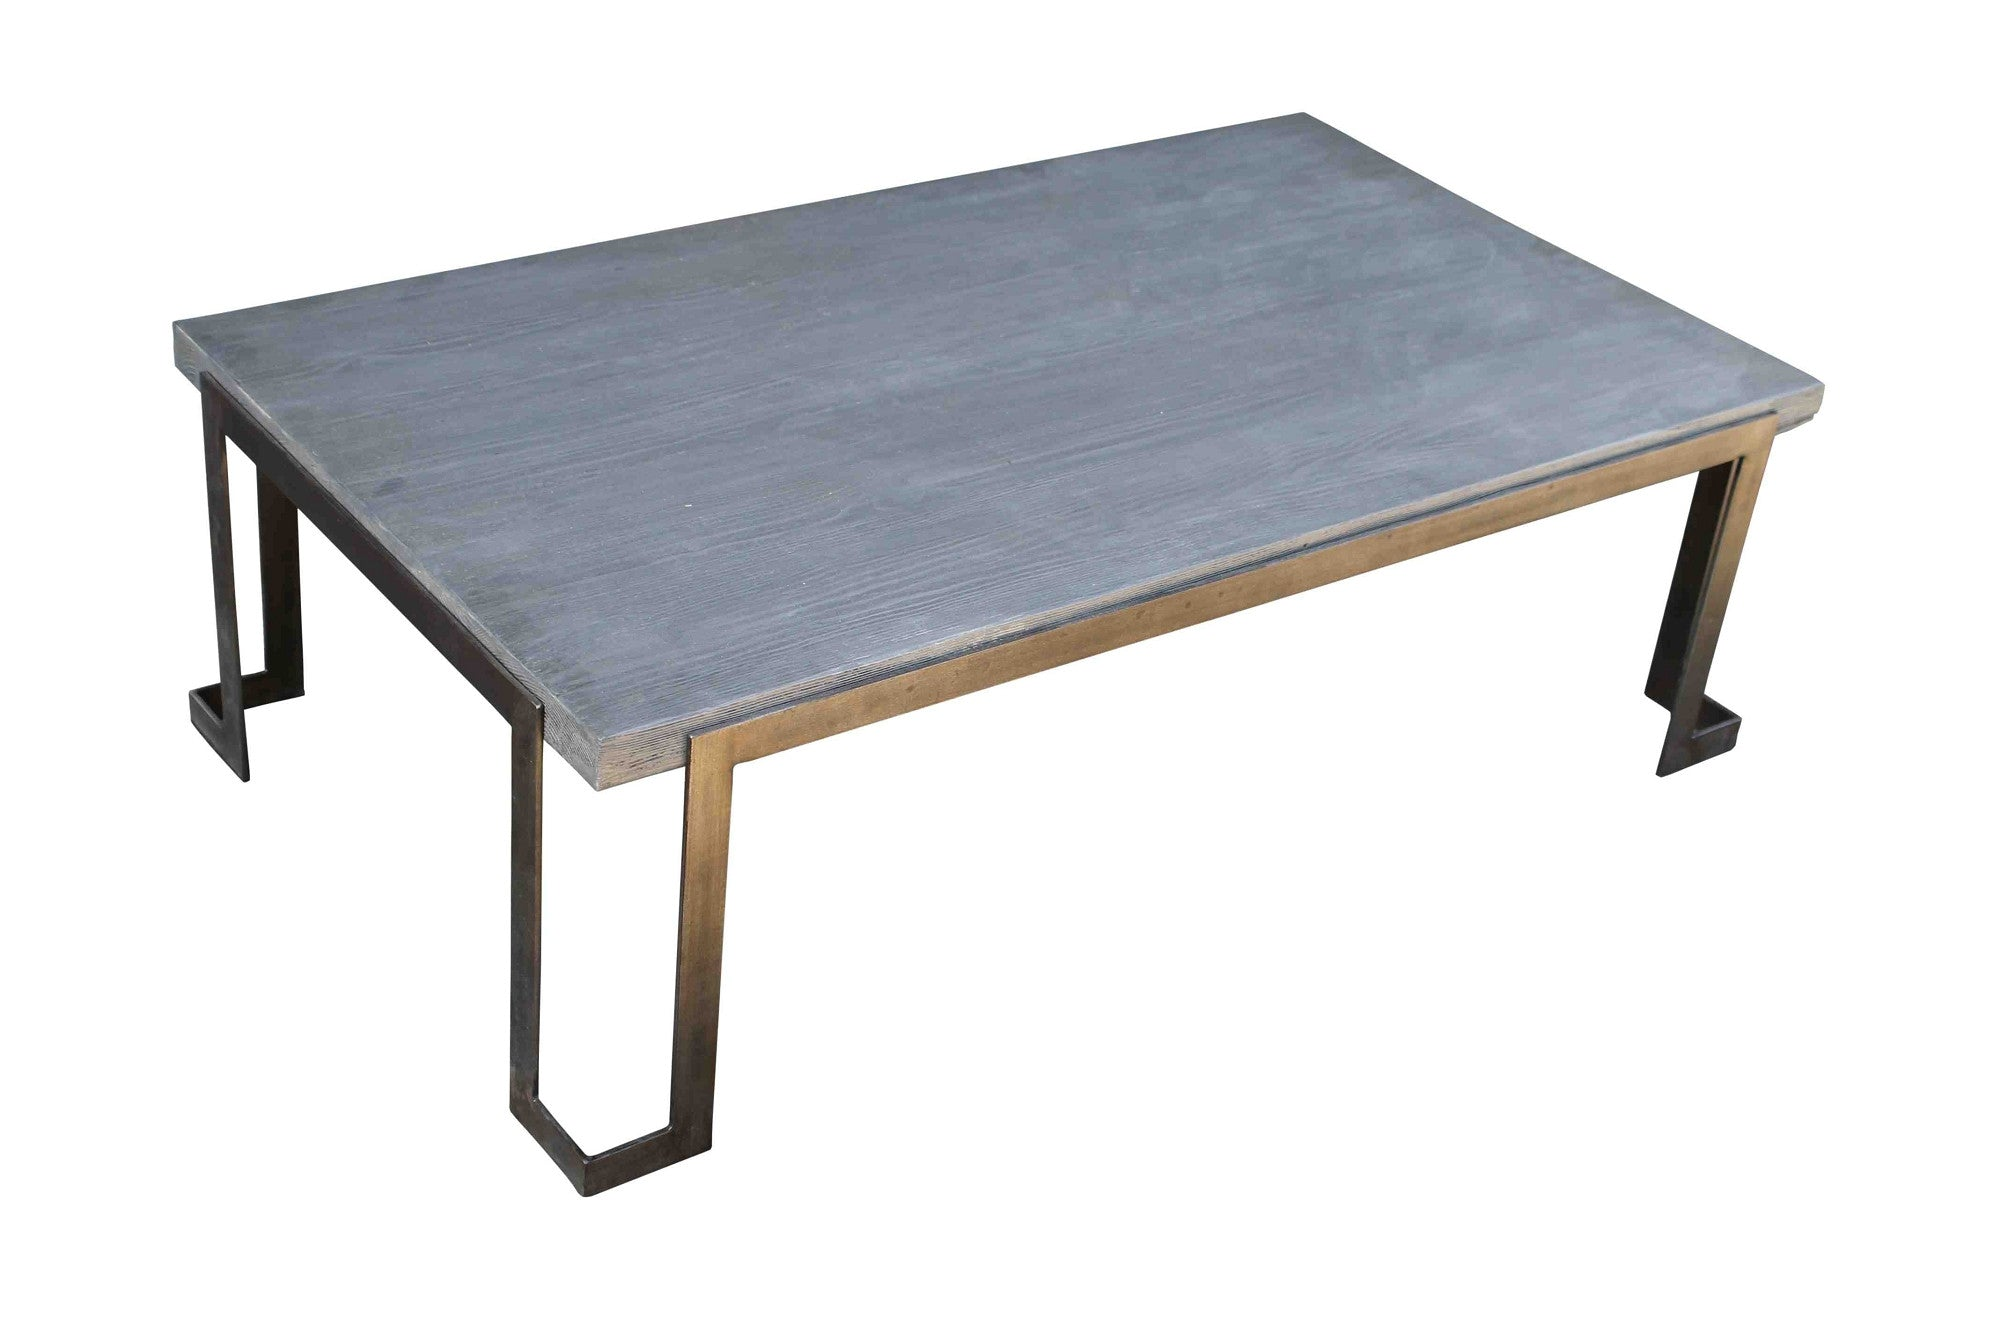 modern metal furniture. Modern Metal And Wood Coffee Table Furniture I